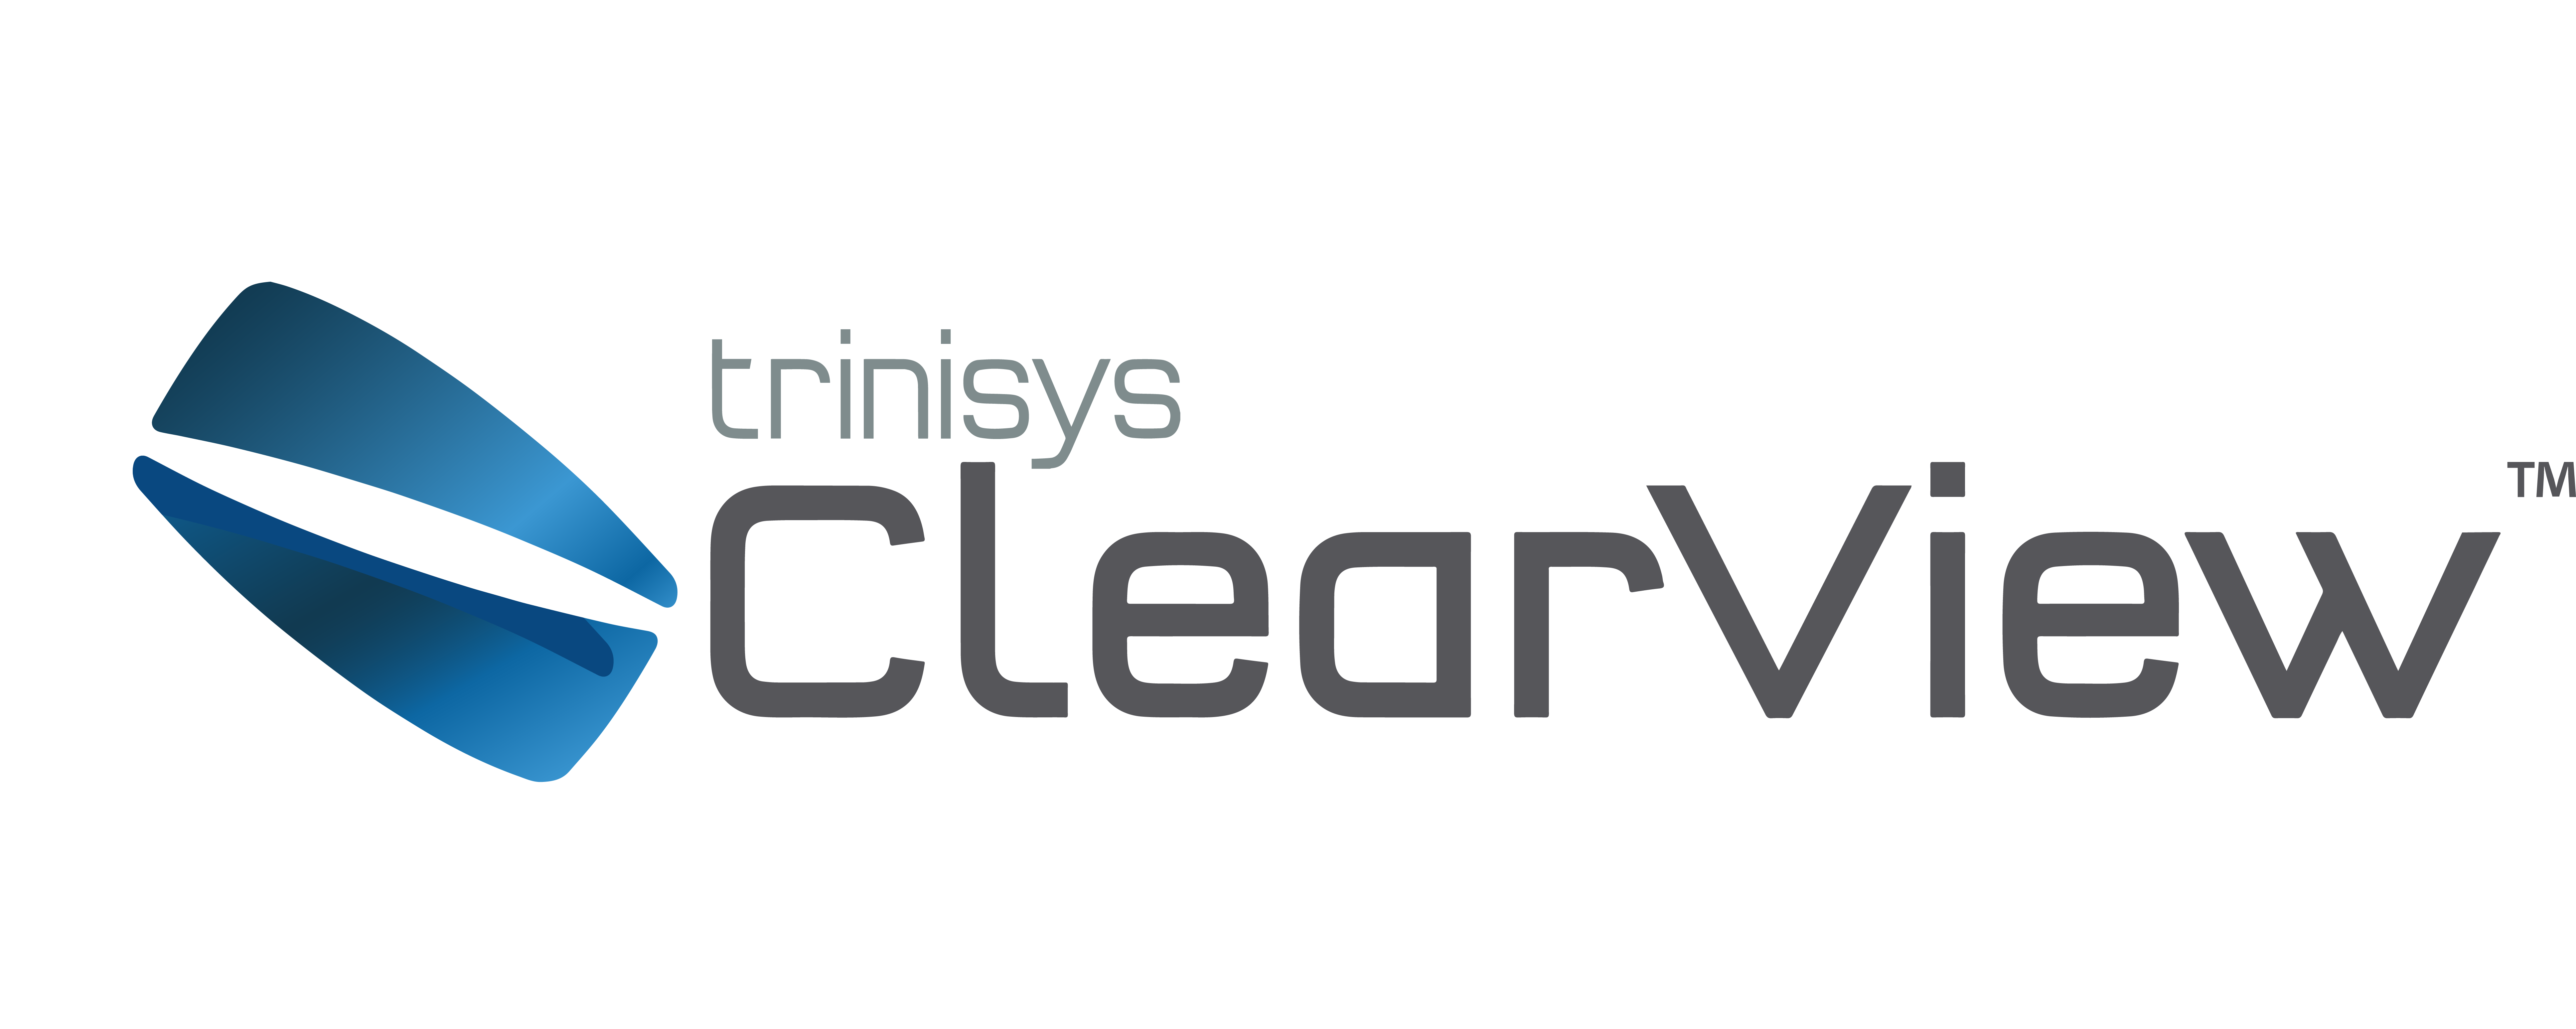 ClearviewTM